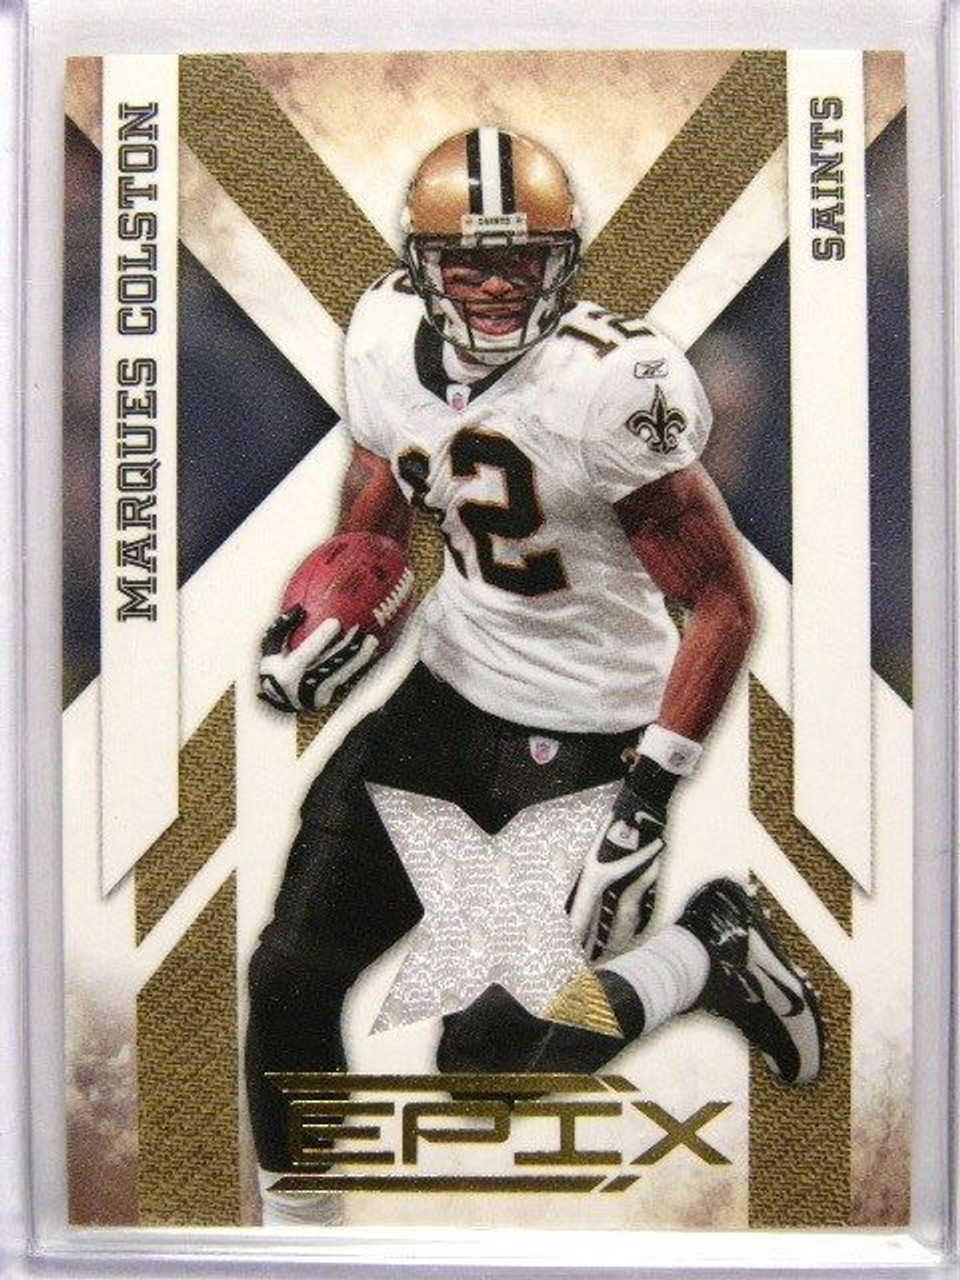 buy online ad349 a5bb5 2010 Panini Epix Marques Colston jersey #D152/299 *27102